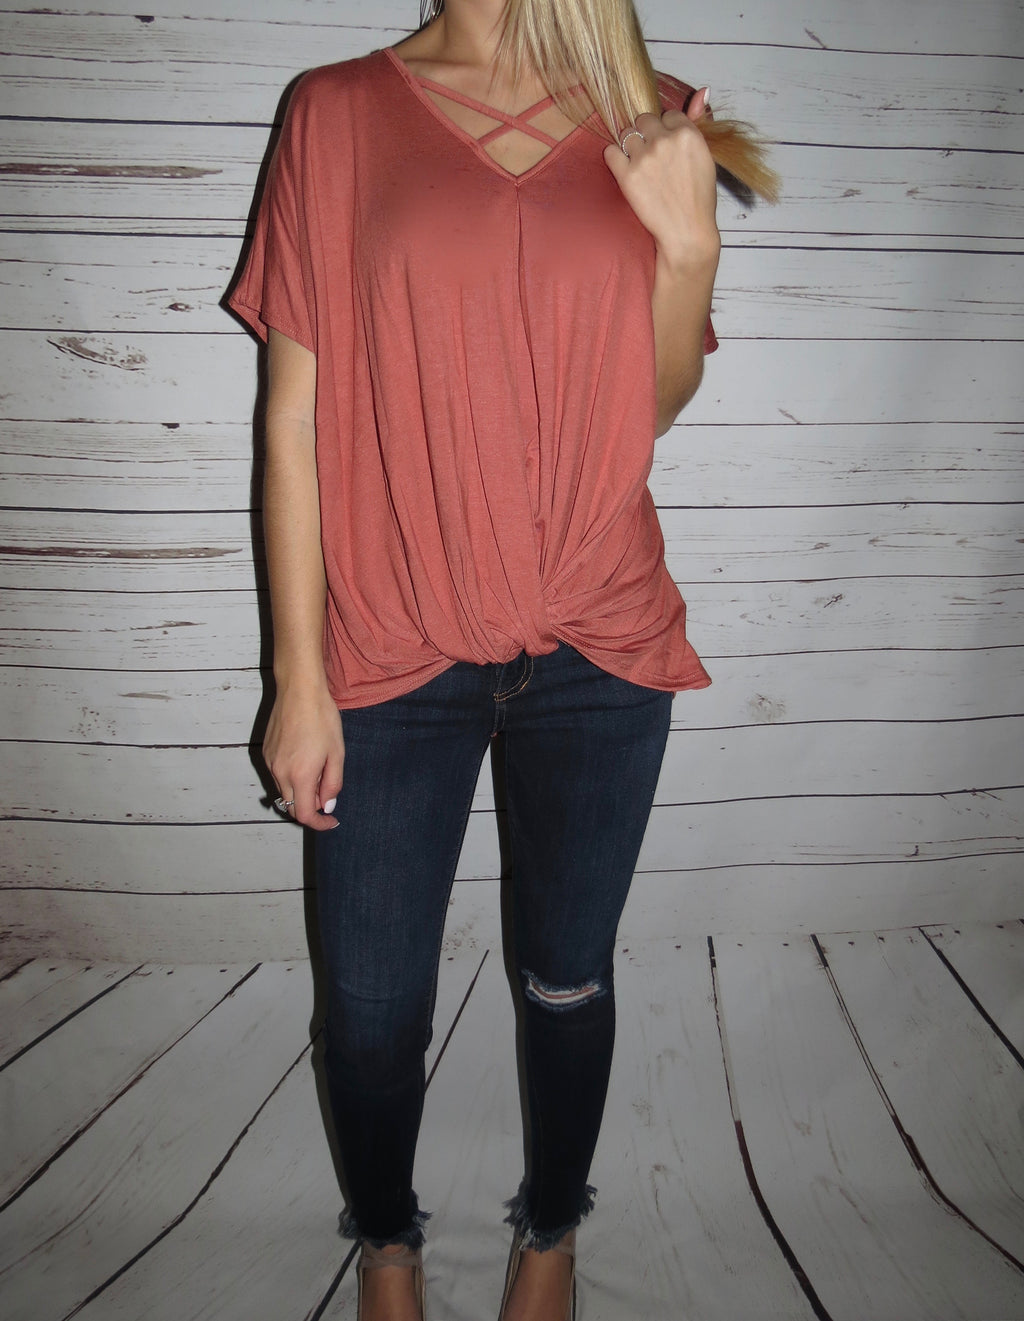 Marsala Knotted Top